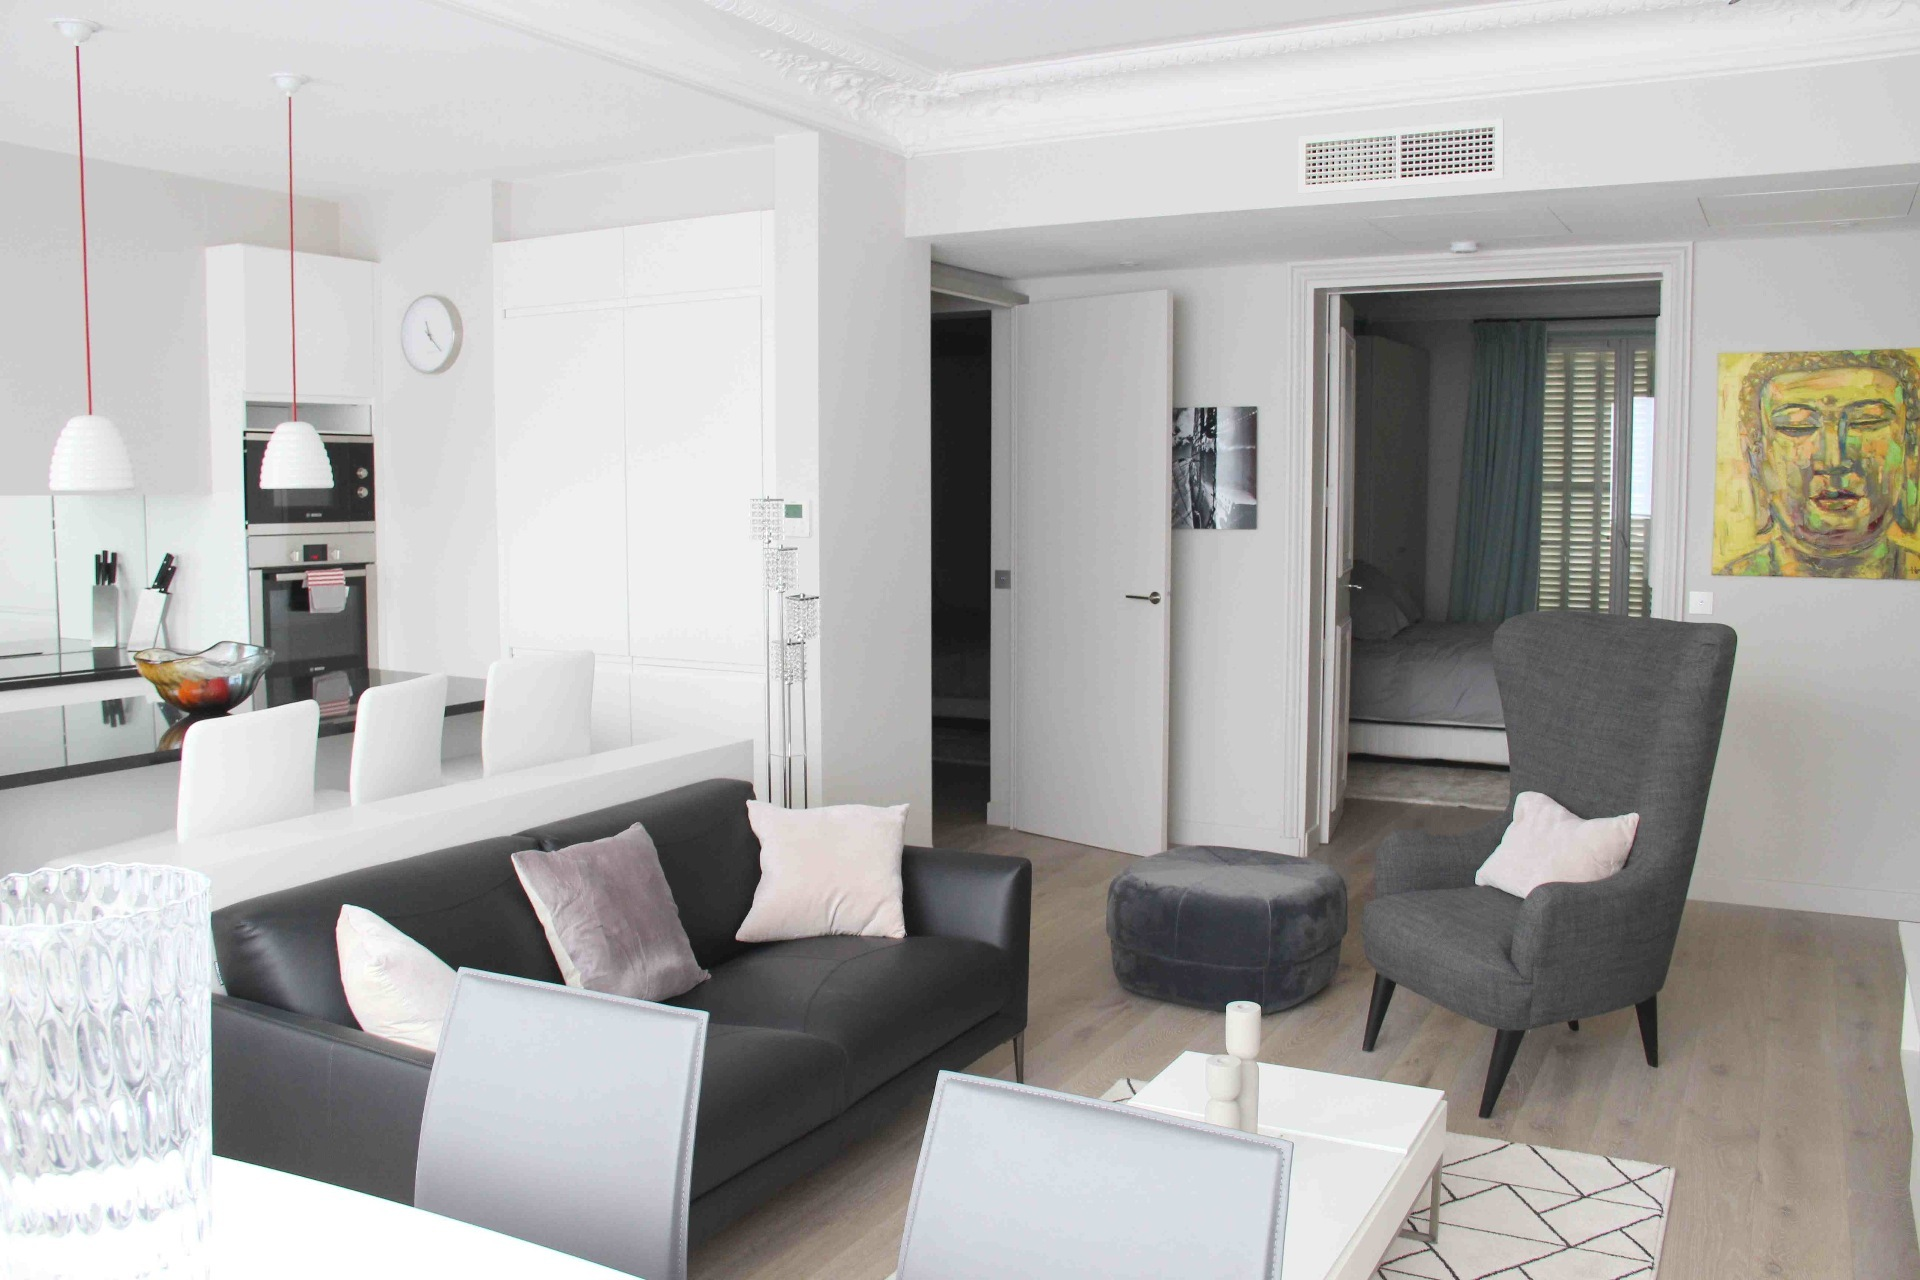 LUXEMBOURG GARDEN 3-ROOM furnished apartment for rent